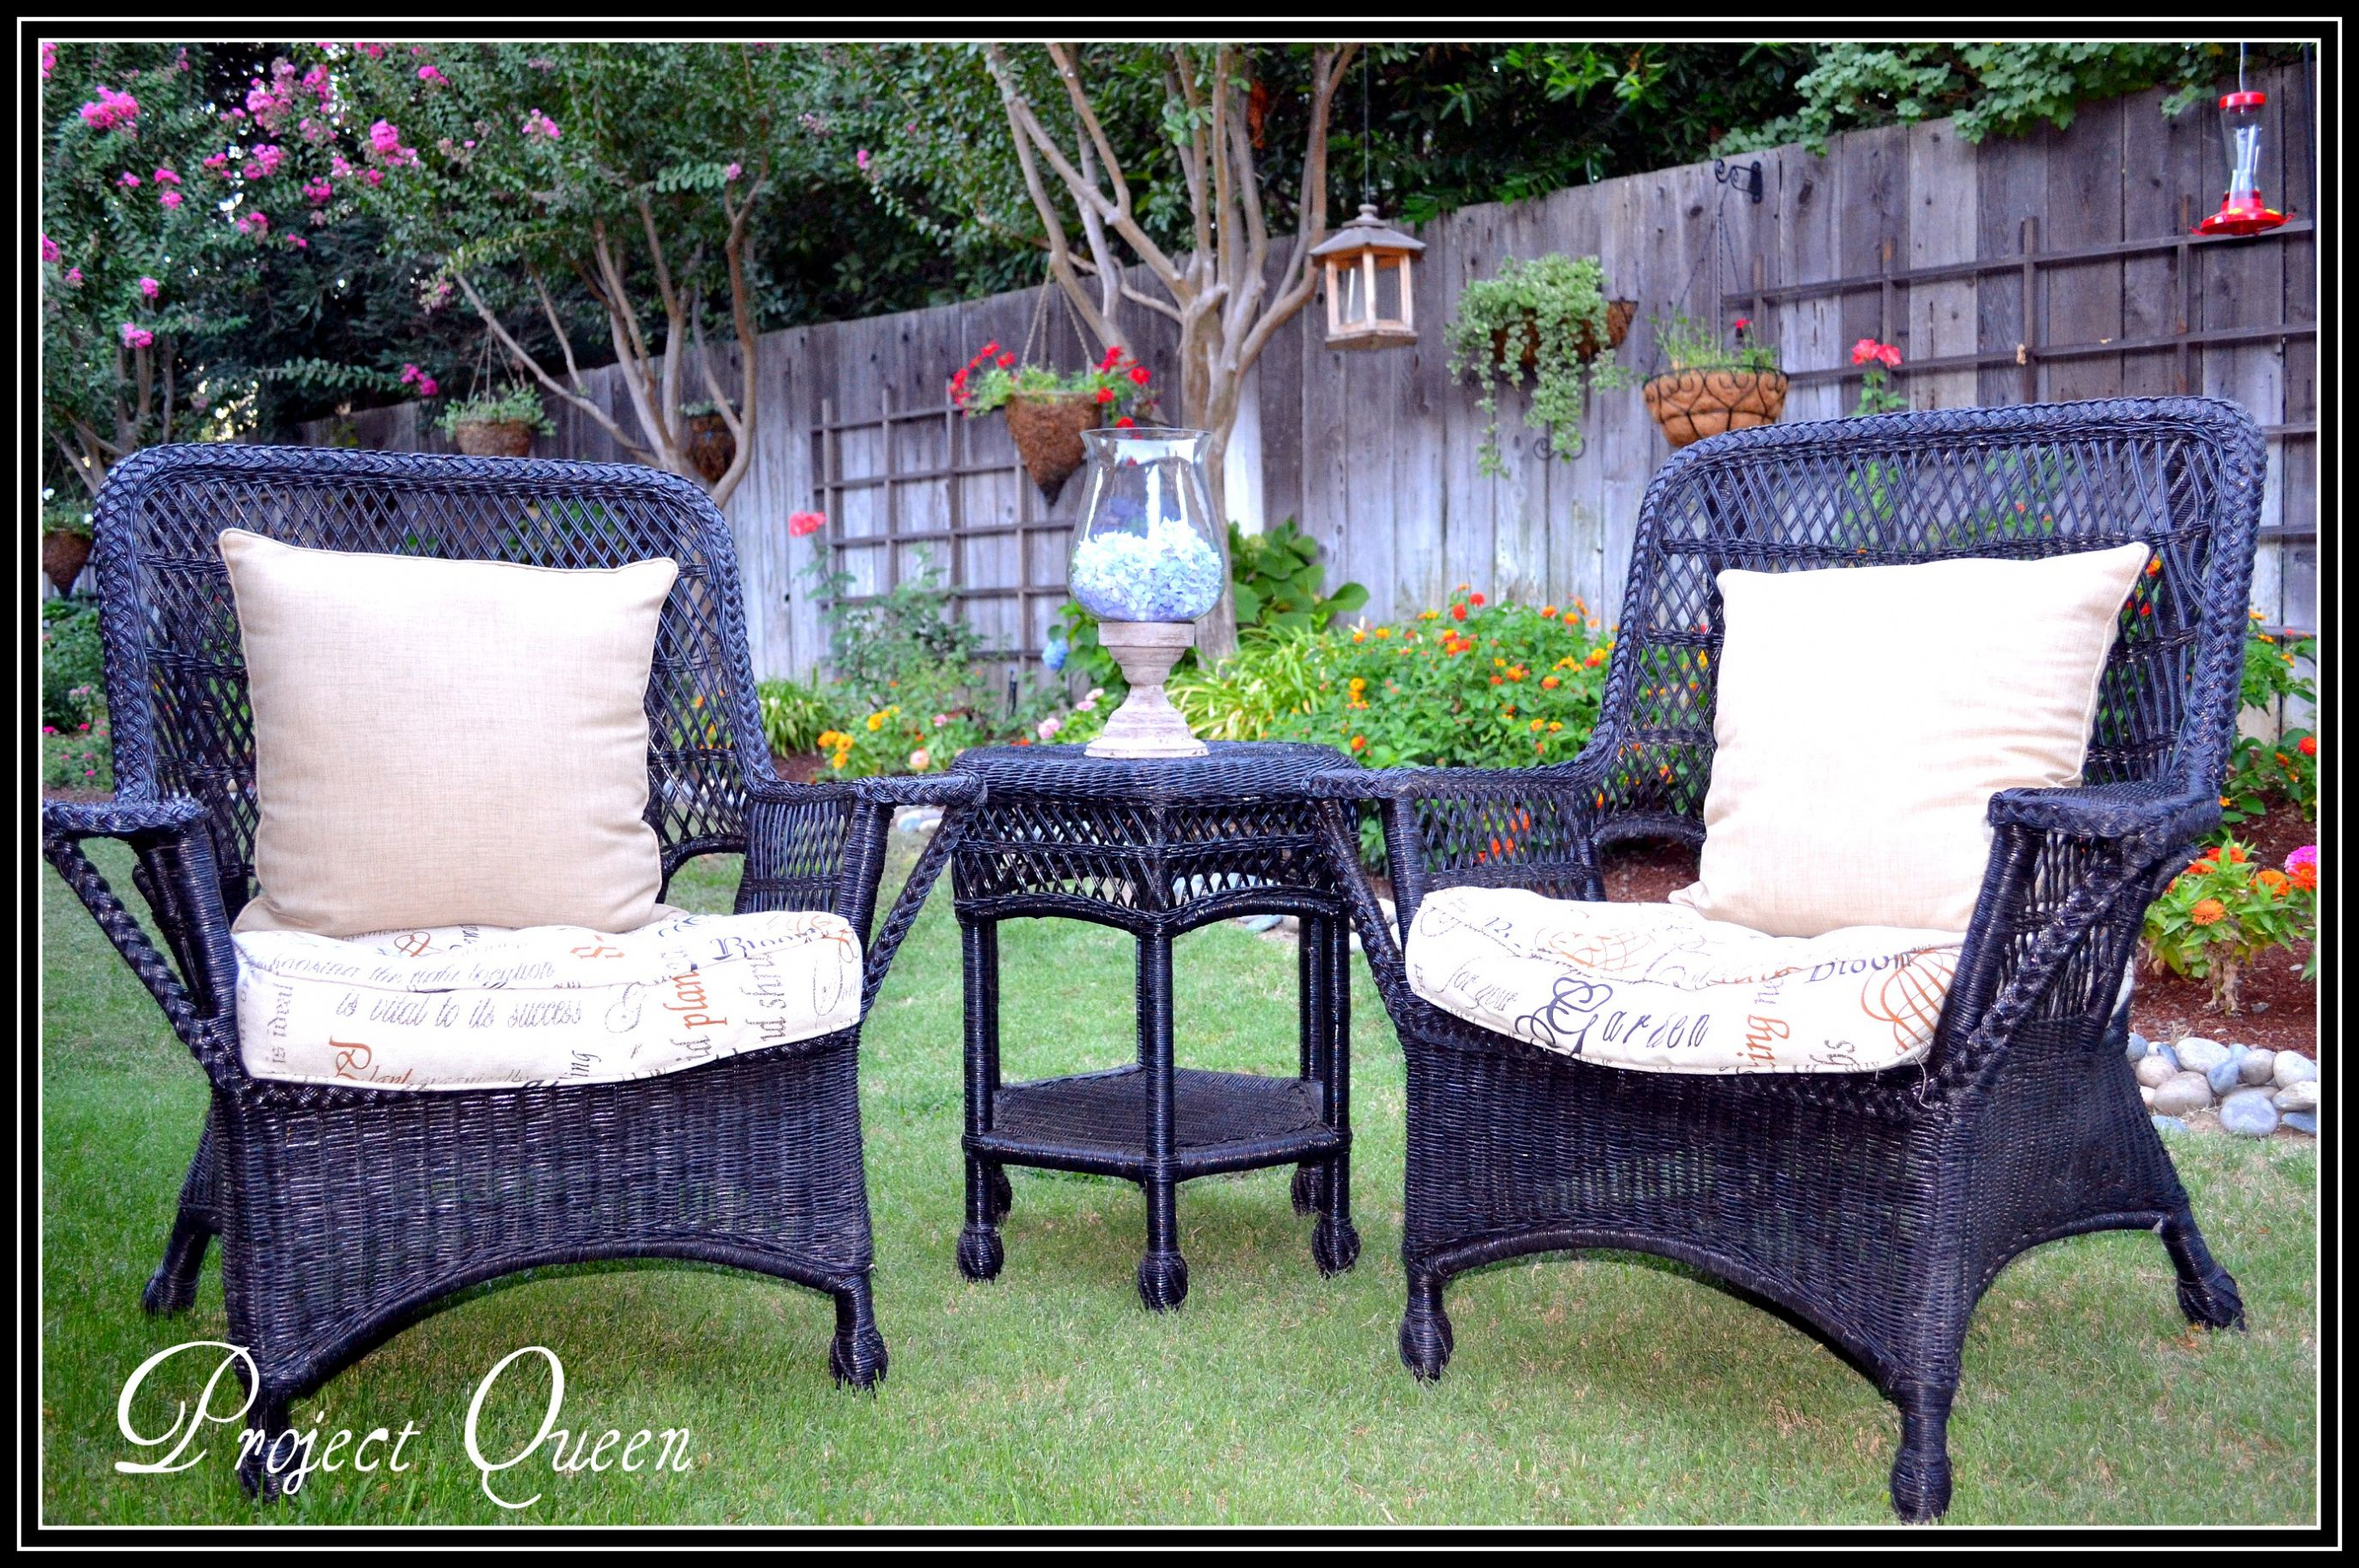 Painting Resin Wicker Furniture   Best Way To Paint Furniture Check More At  Http://cacophonouscreations.com/painting Resin Wicker Furniture/